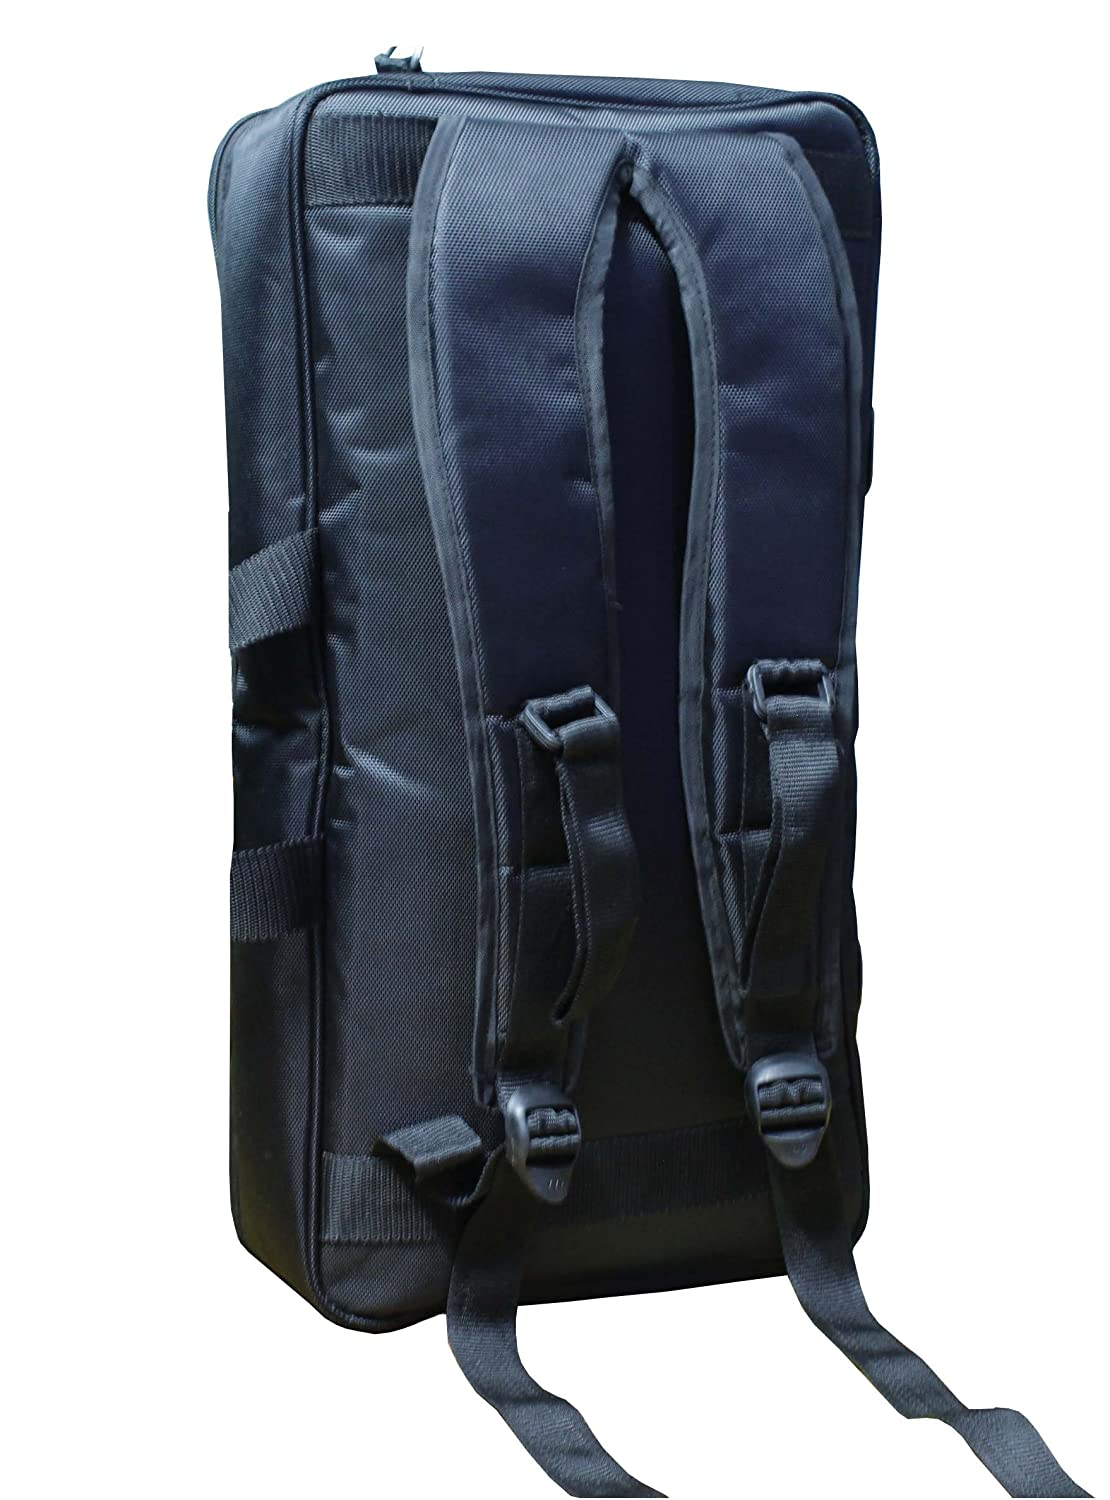 Baritone Padded Quality Synthesizer Bag For Elektron Analog Four MKII Synthesiser Bag Size Inch 17X11X5